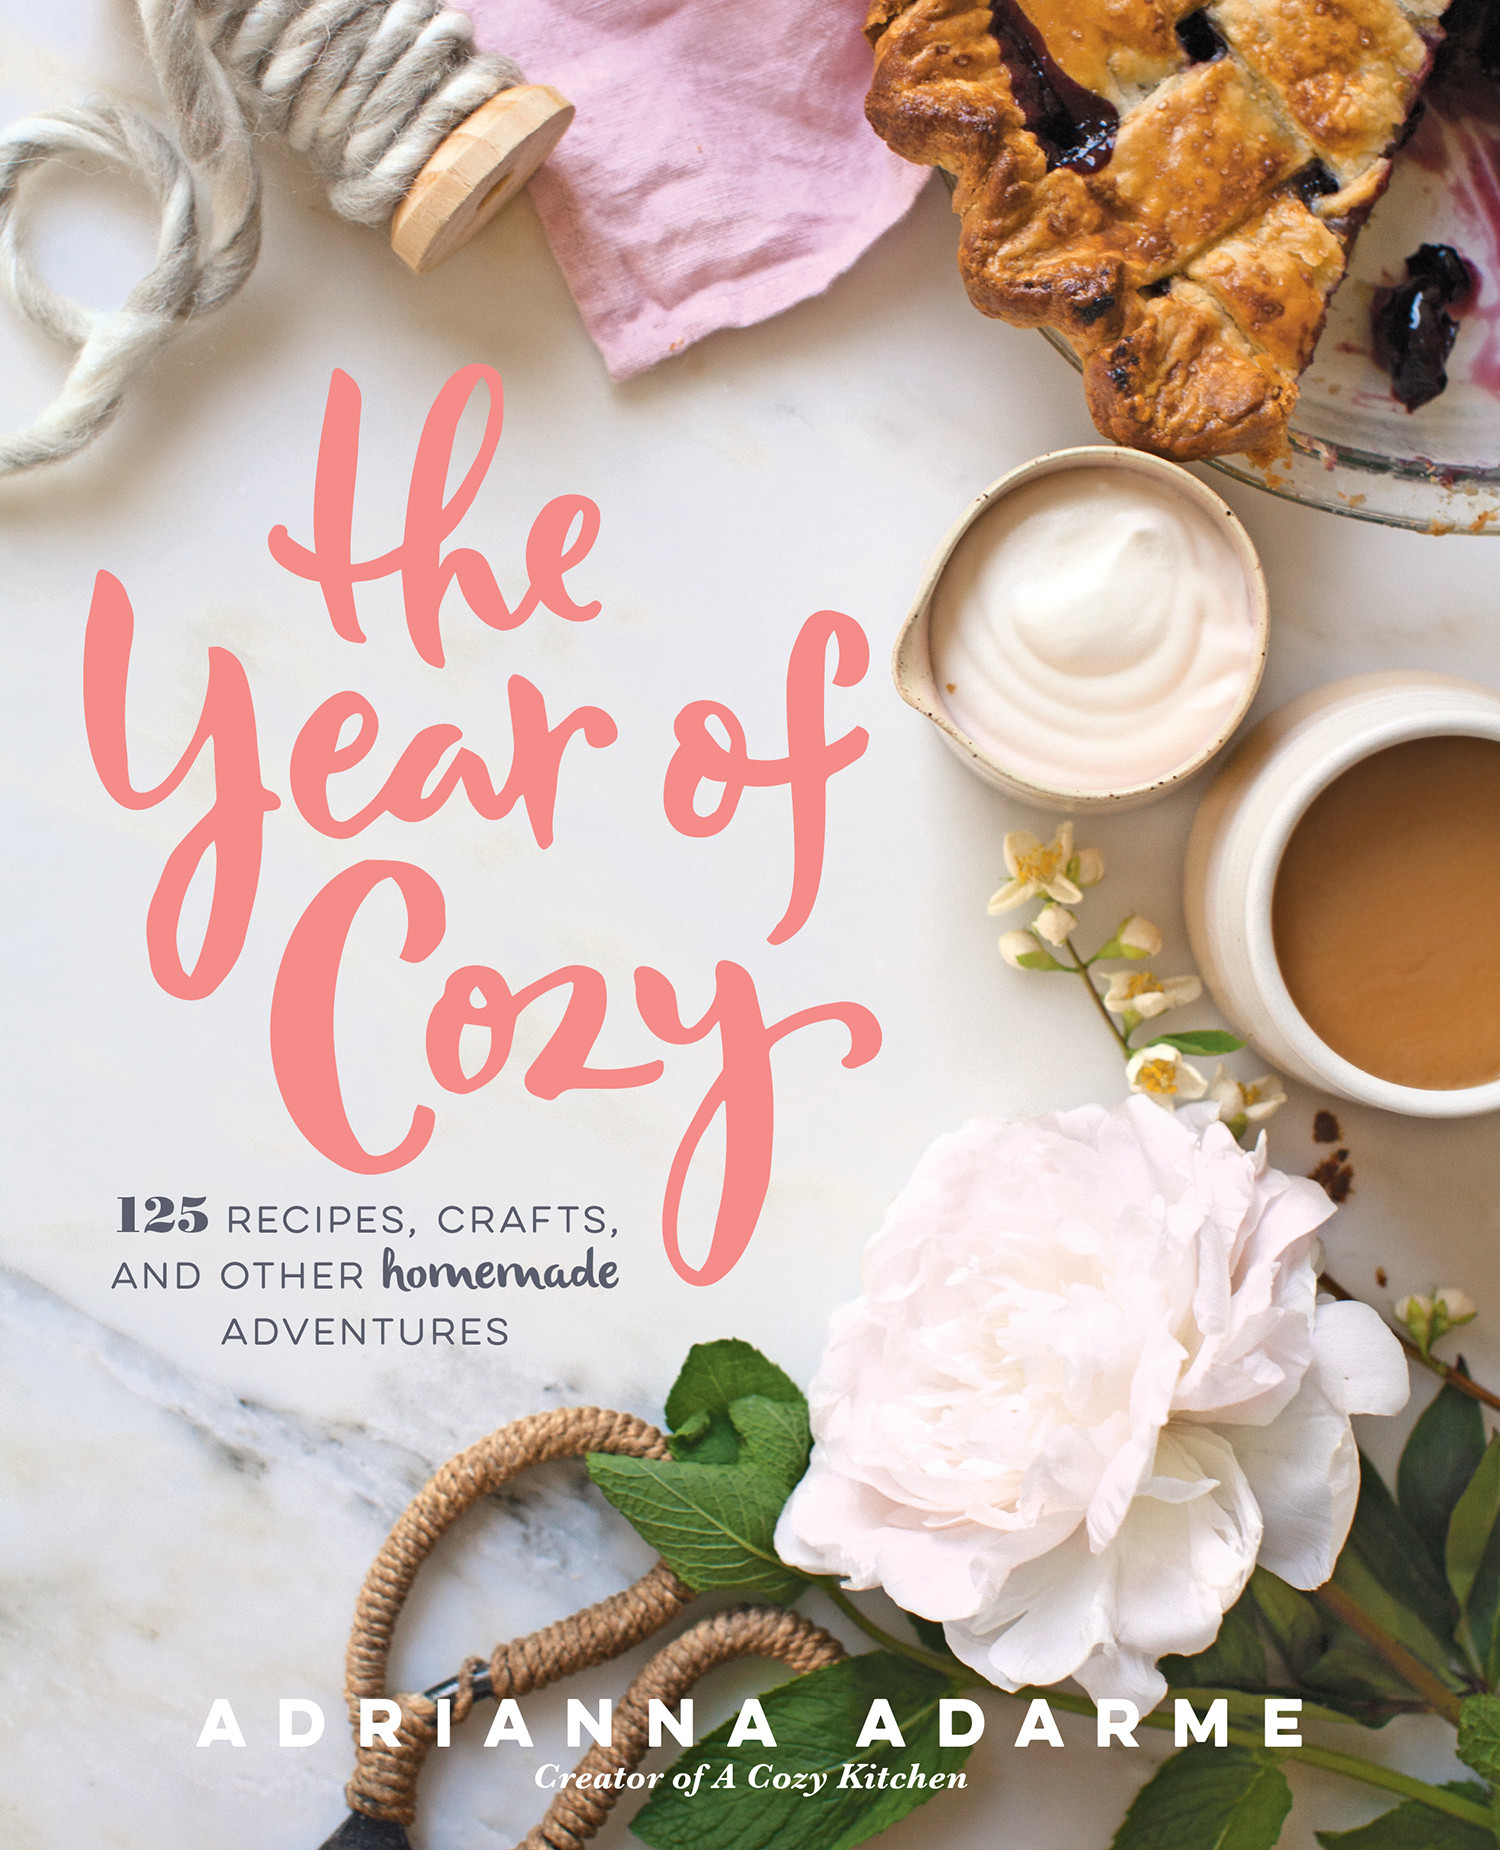 Adrianna Adarme's new book, The Year of Cozy. Photo by Adrianna Adarme.